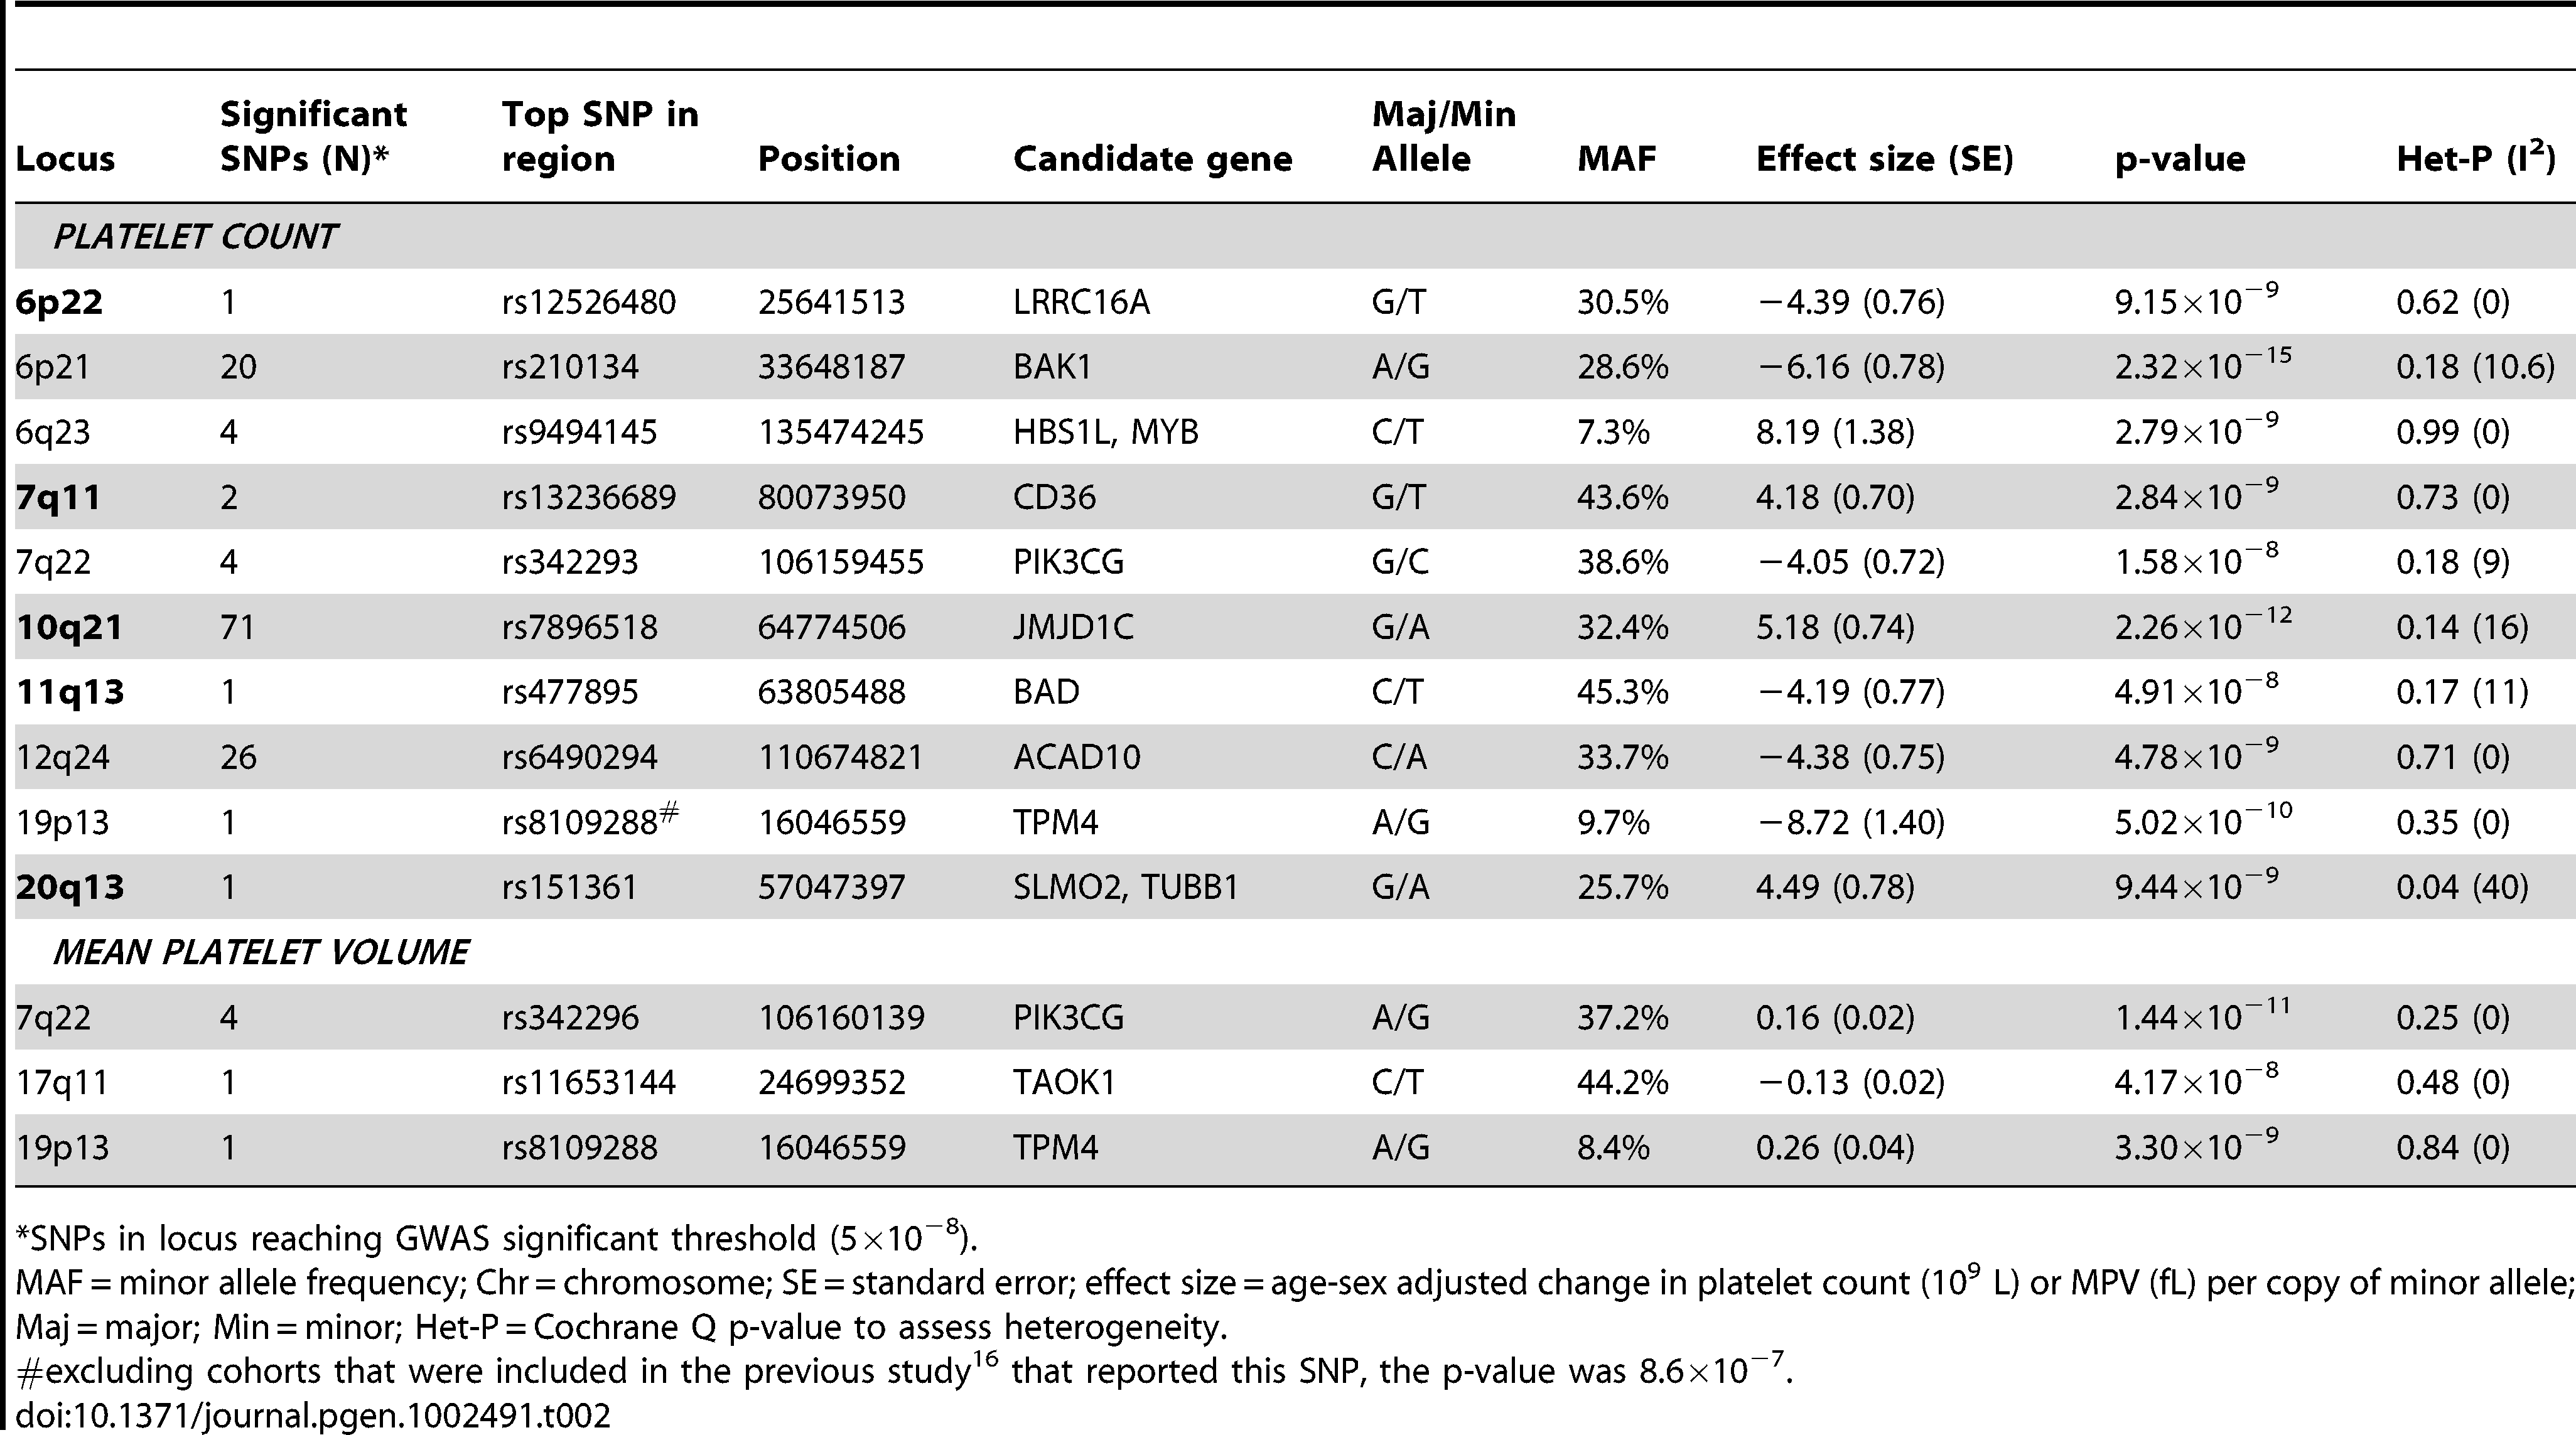 Novel and validated loci based on genome-wide association with platelet count and mean platelet volume in COGENT (novel loci are in bold).